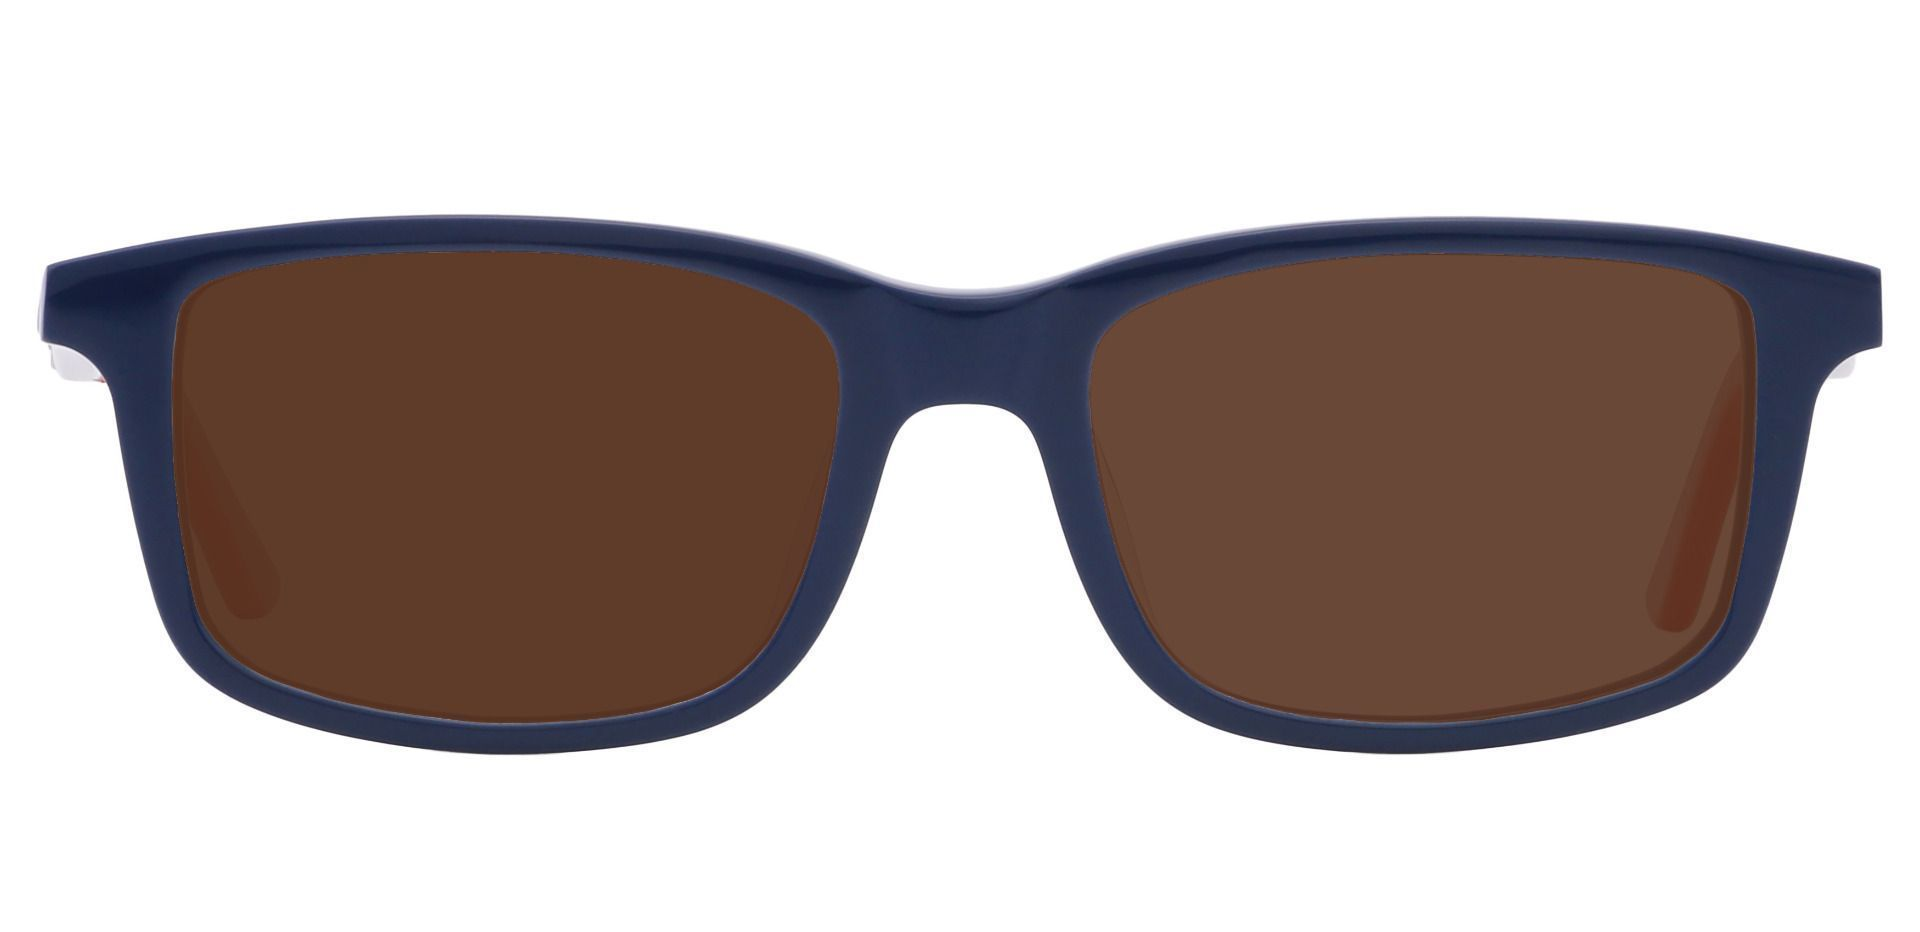 Hub Rectangle Single Vision Sunglasses - Blue Frame With Brown Lenses